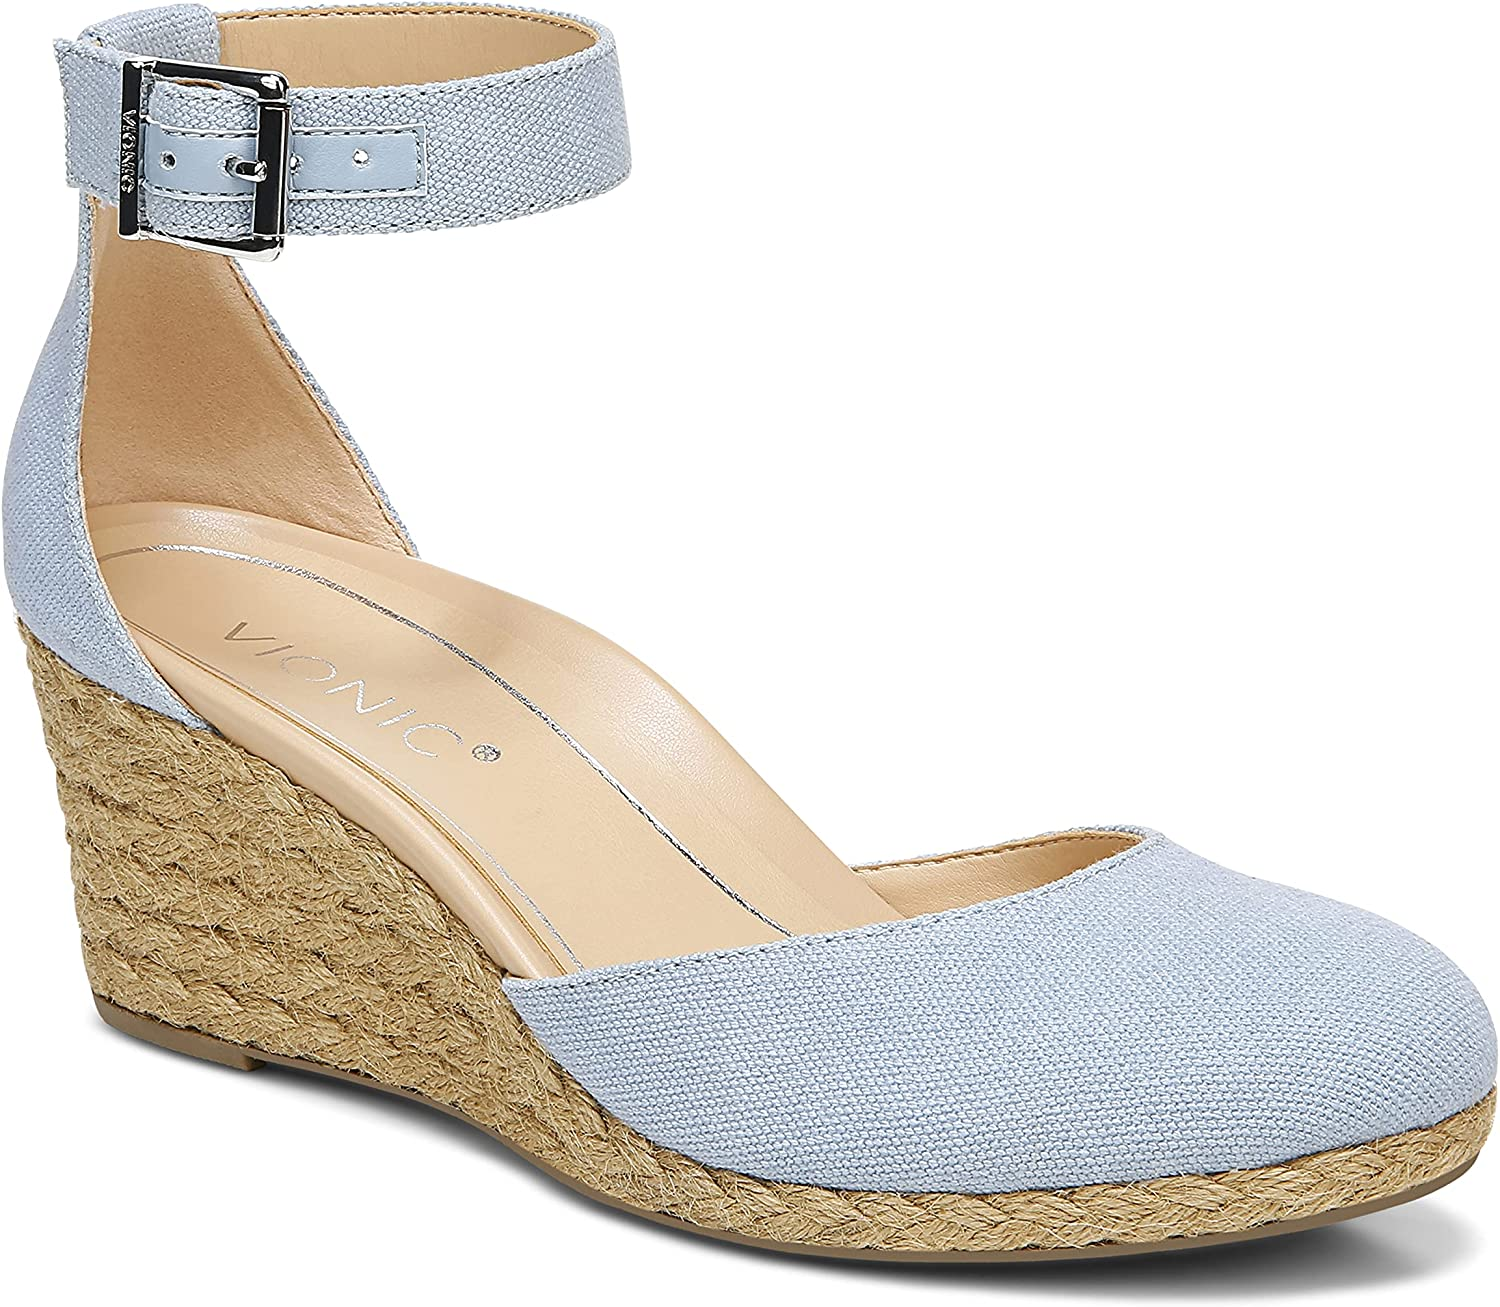 Vionic Women's Aruba Recommended Amy Espadrille Wedge We Ladies - Toe Closed 55% OFF